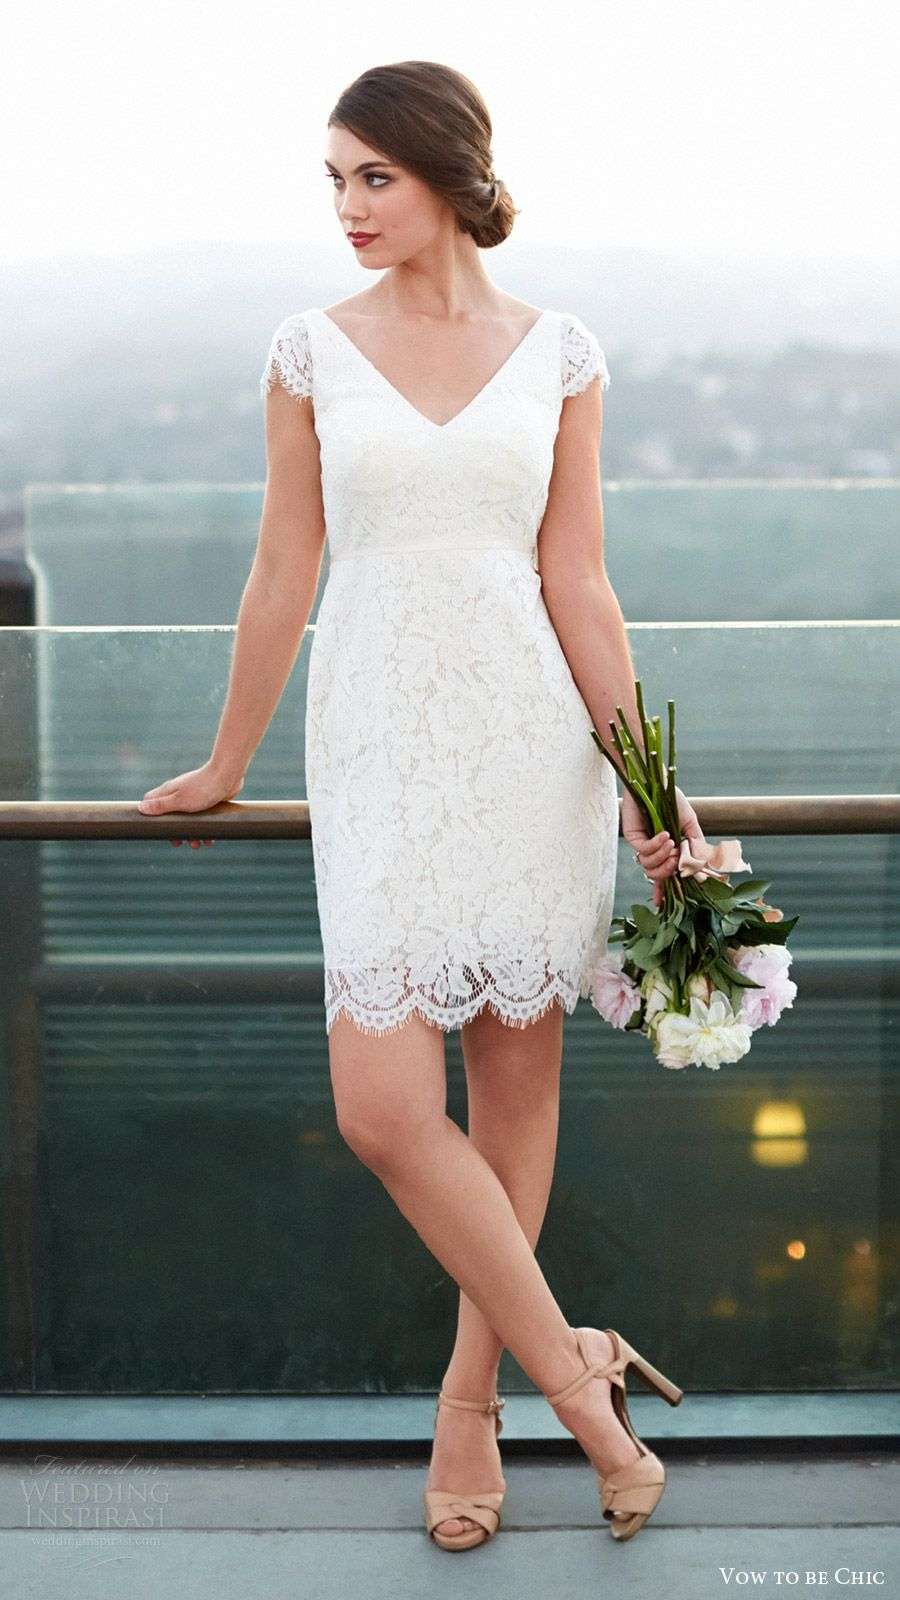 Bridesmaid trend report 2016 featuring vow to be chic designer bridesmaid trend report 2016 featuring vow to be chic designer bridesmaid little white dresses ombrellifo Image collections